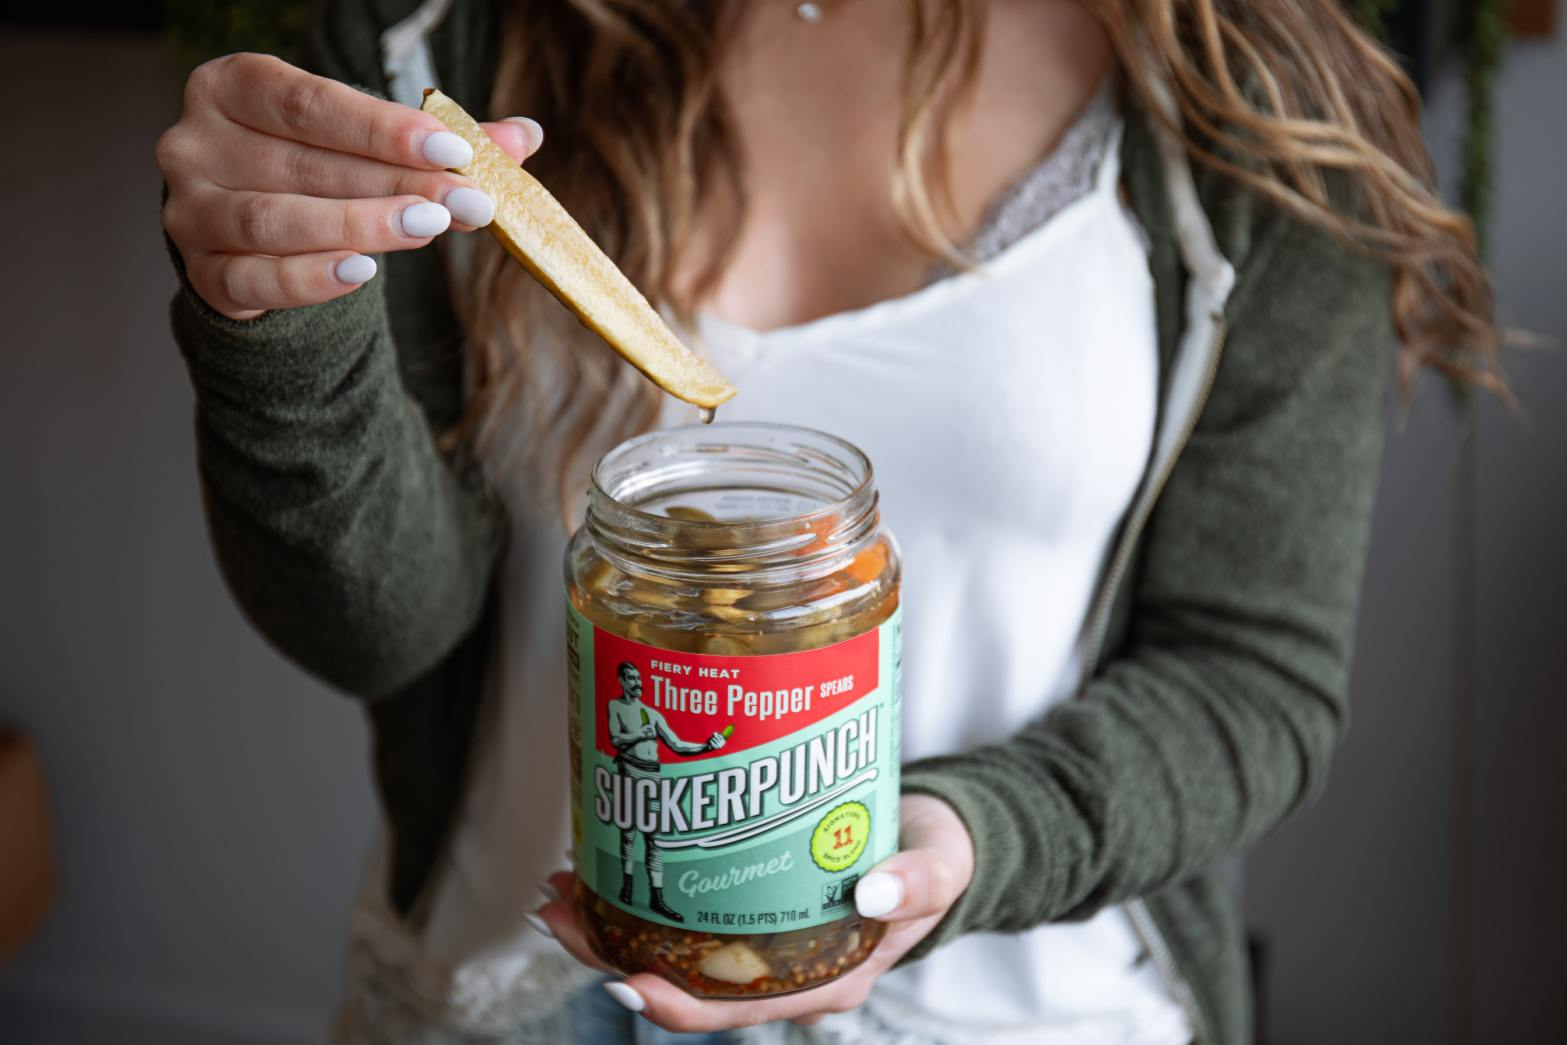 Woman holding an open jar of pickles in one hand and a pickle in the other –Pickels Can't Read Their Own Label